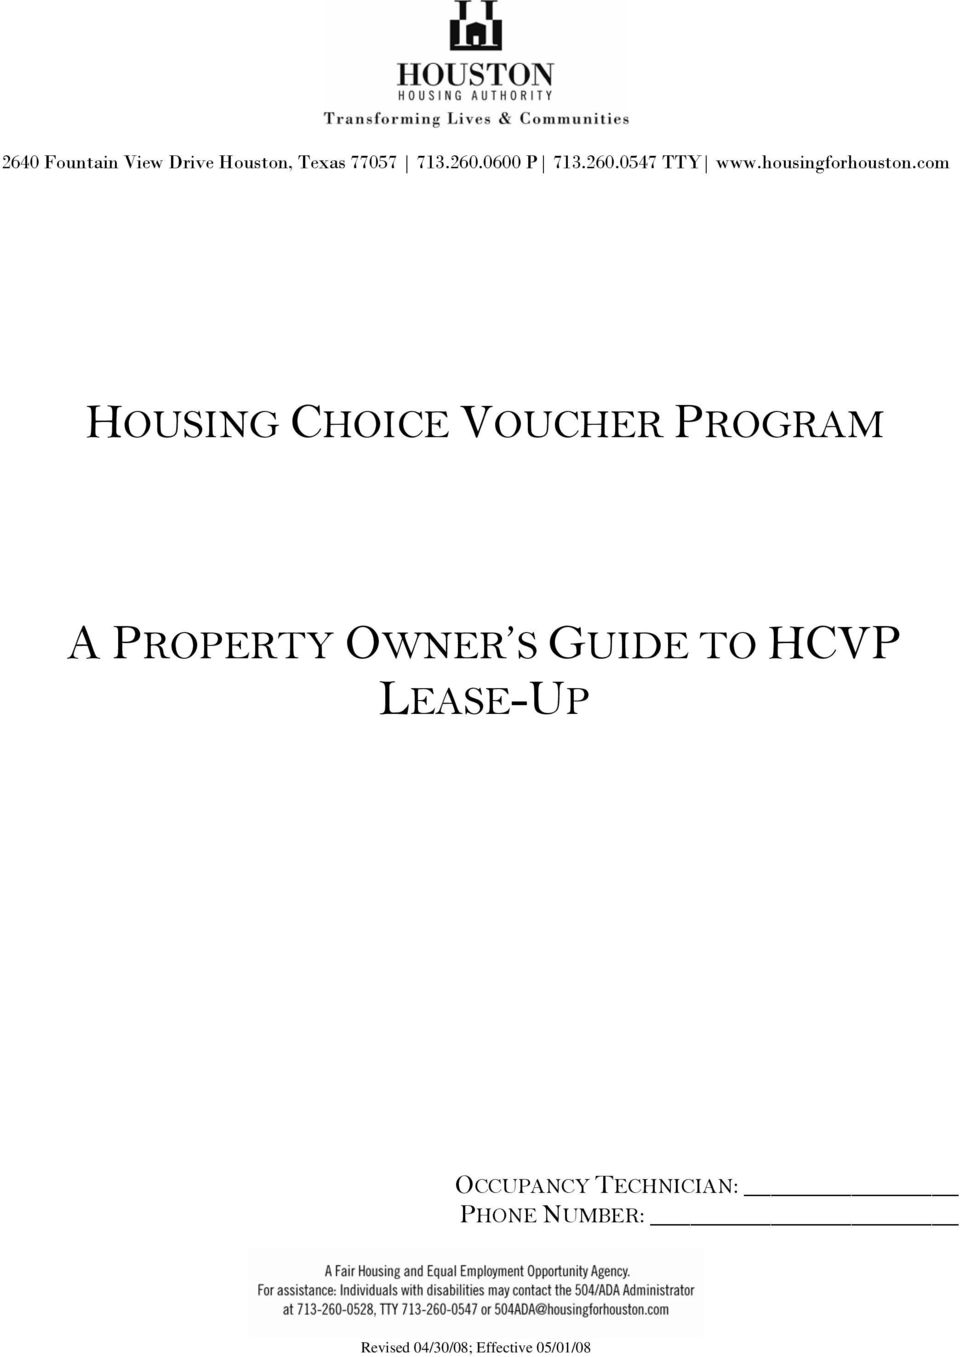 GUIDE TO HCVP LEASE-UP